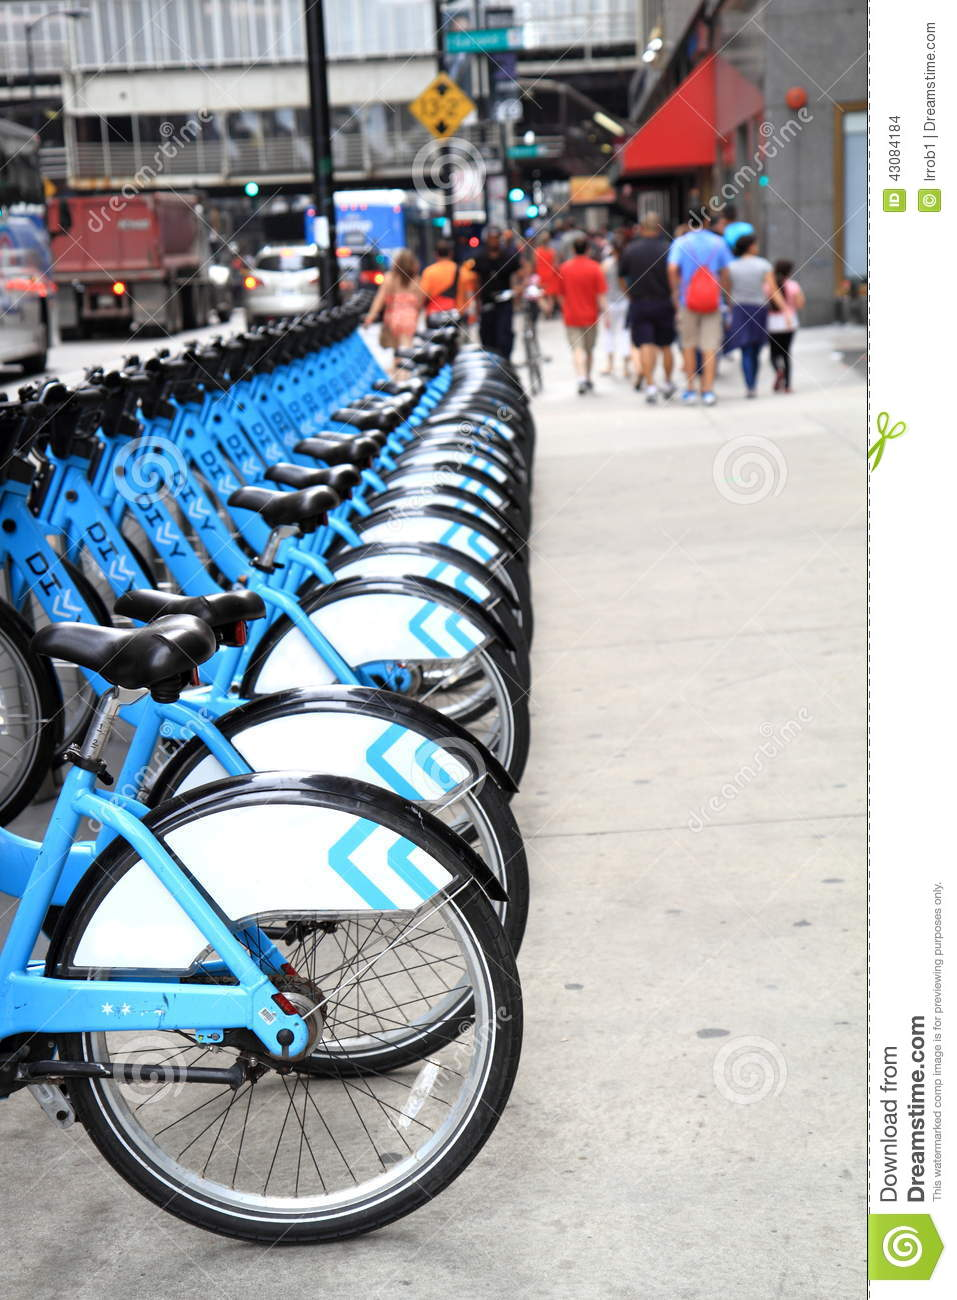 Bikes To Rent In Chicago Bicycle rental station in